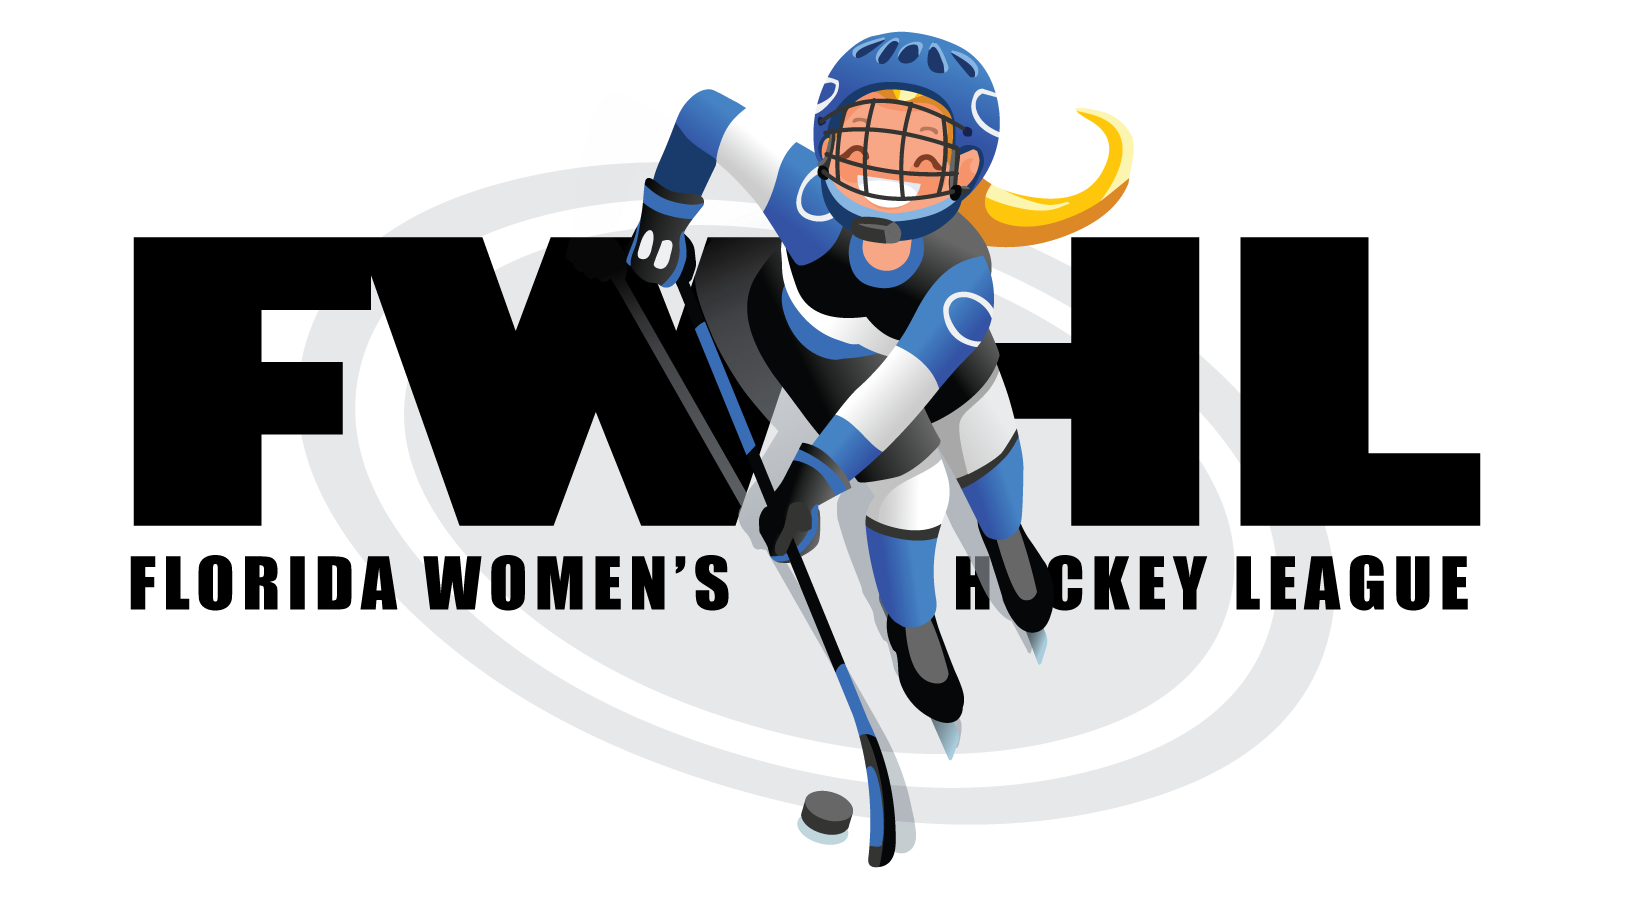 FWHL | Florida Womens Hockey League, a fun travel or tournament style league for women ages 18 and up in Florida